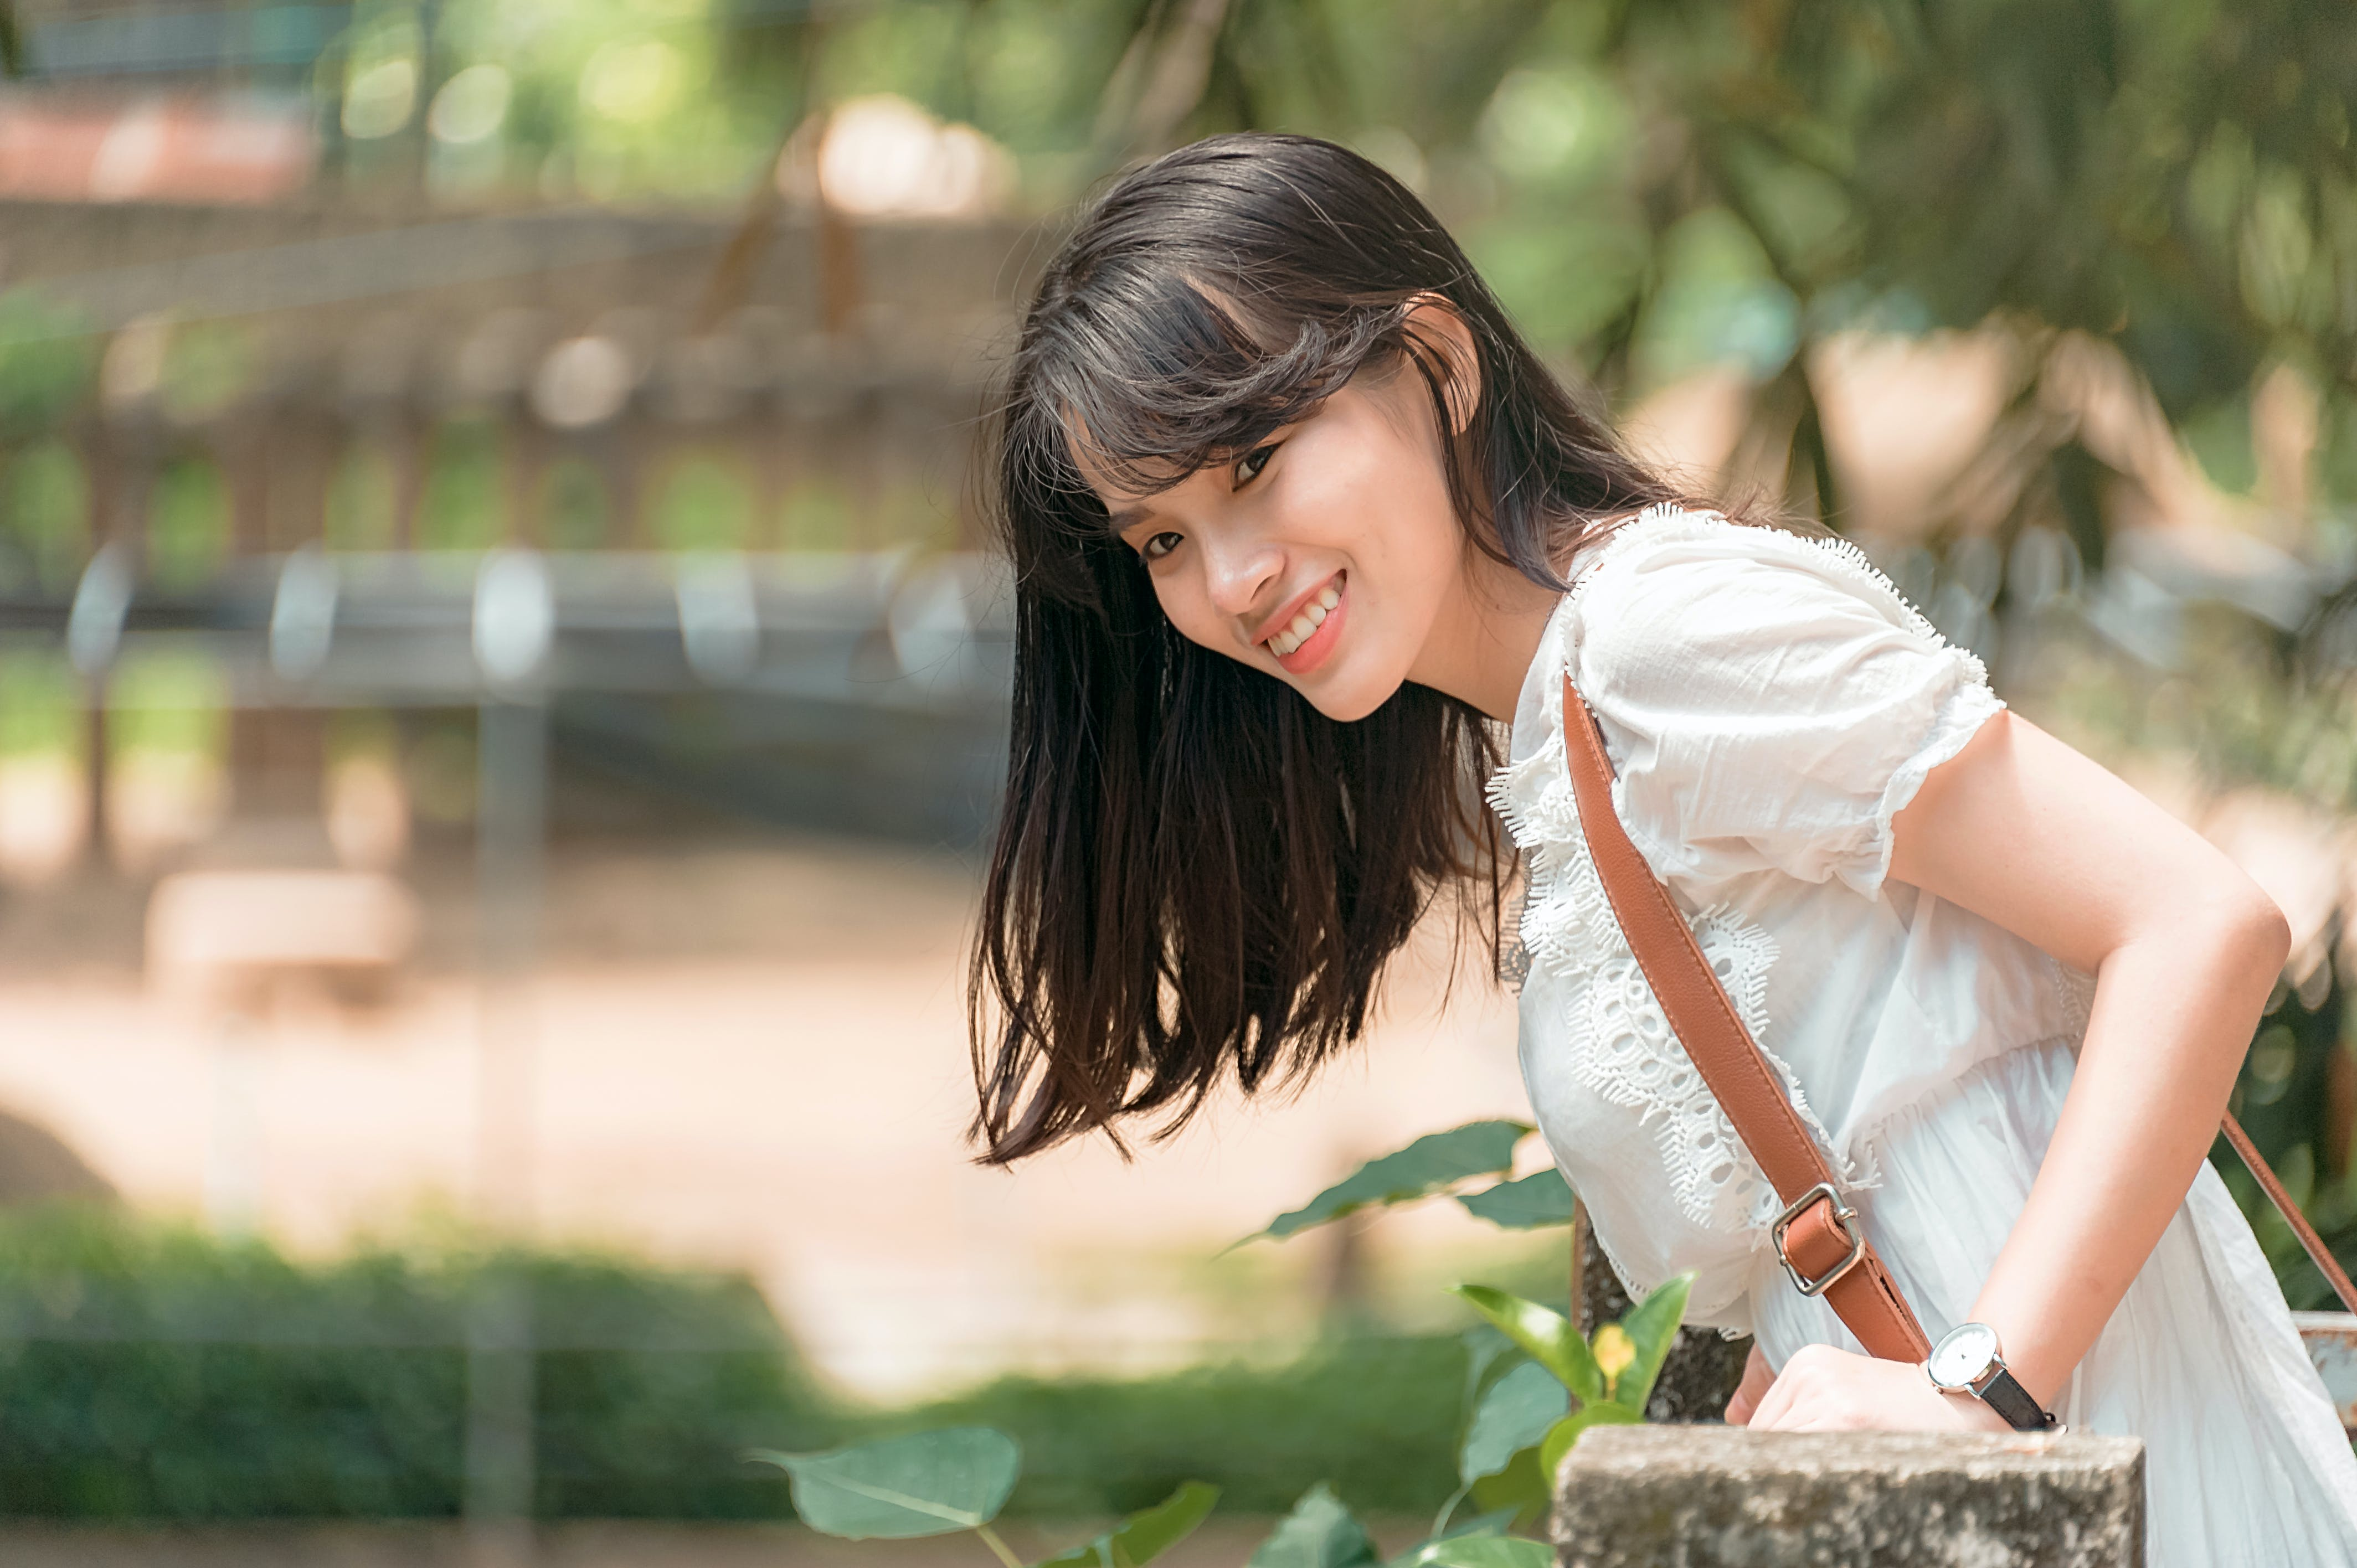 Photo of Woman in White Outfit Smiling.